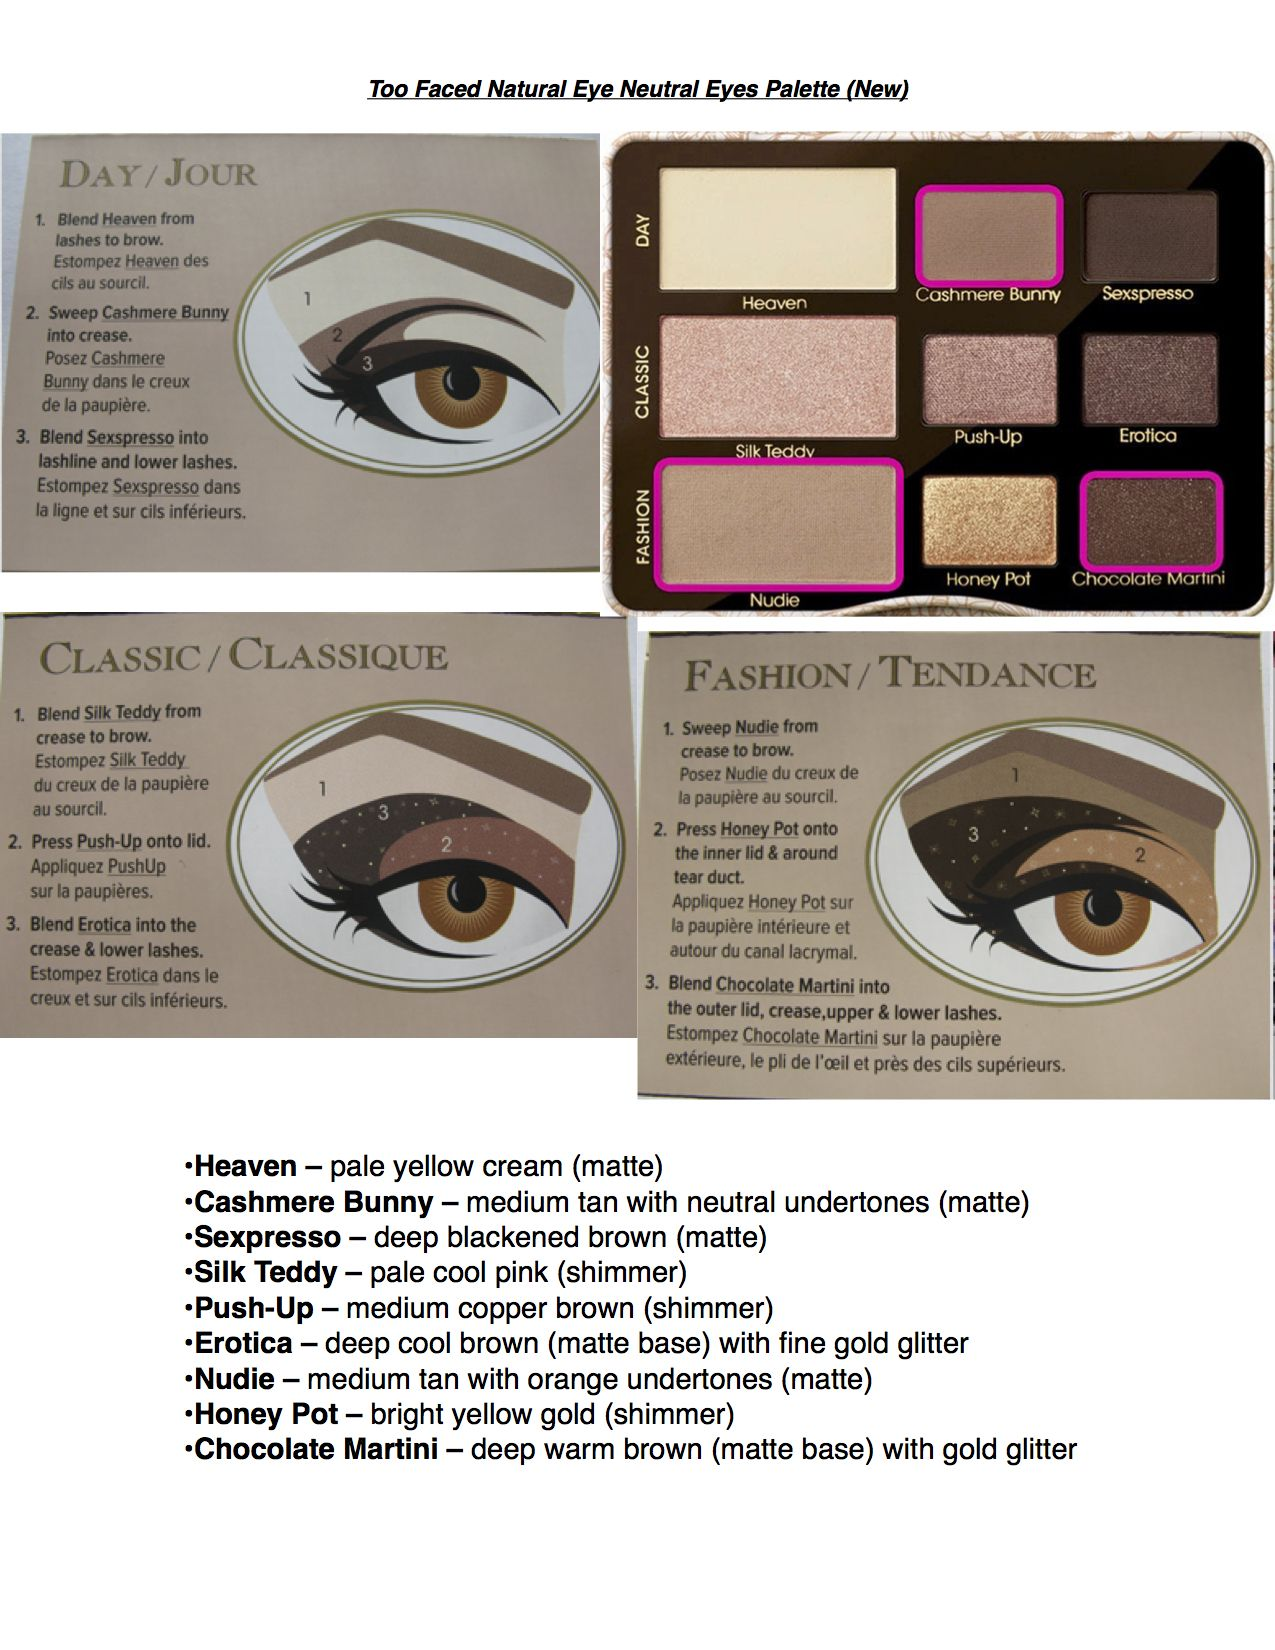 Too Faced Natural Eyes Palette New Company Print Makeup